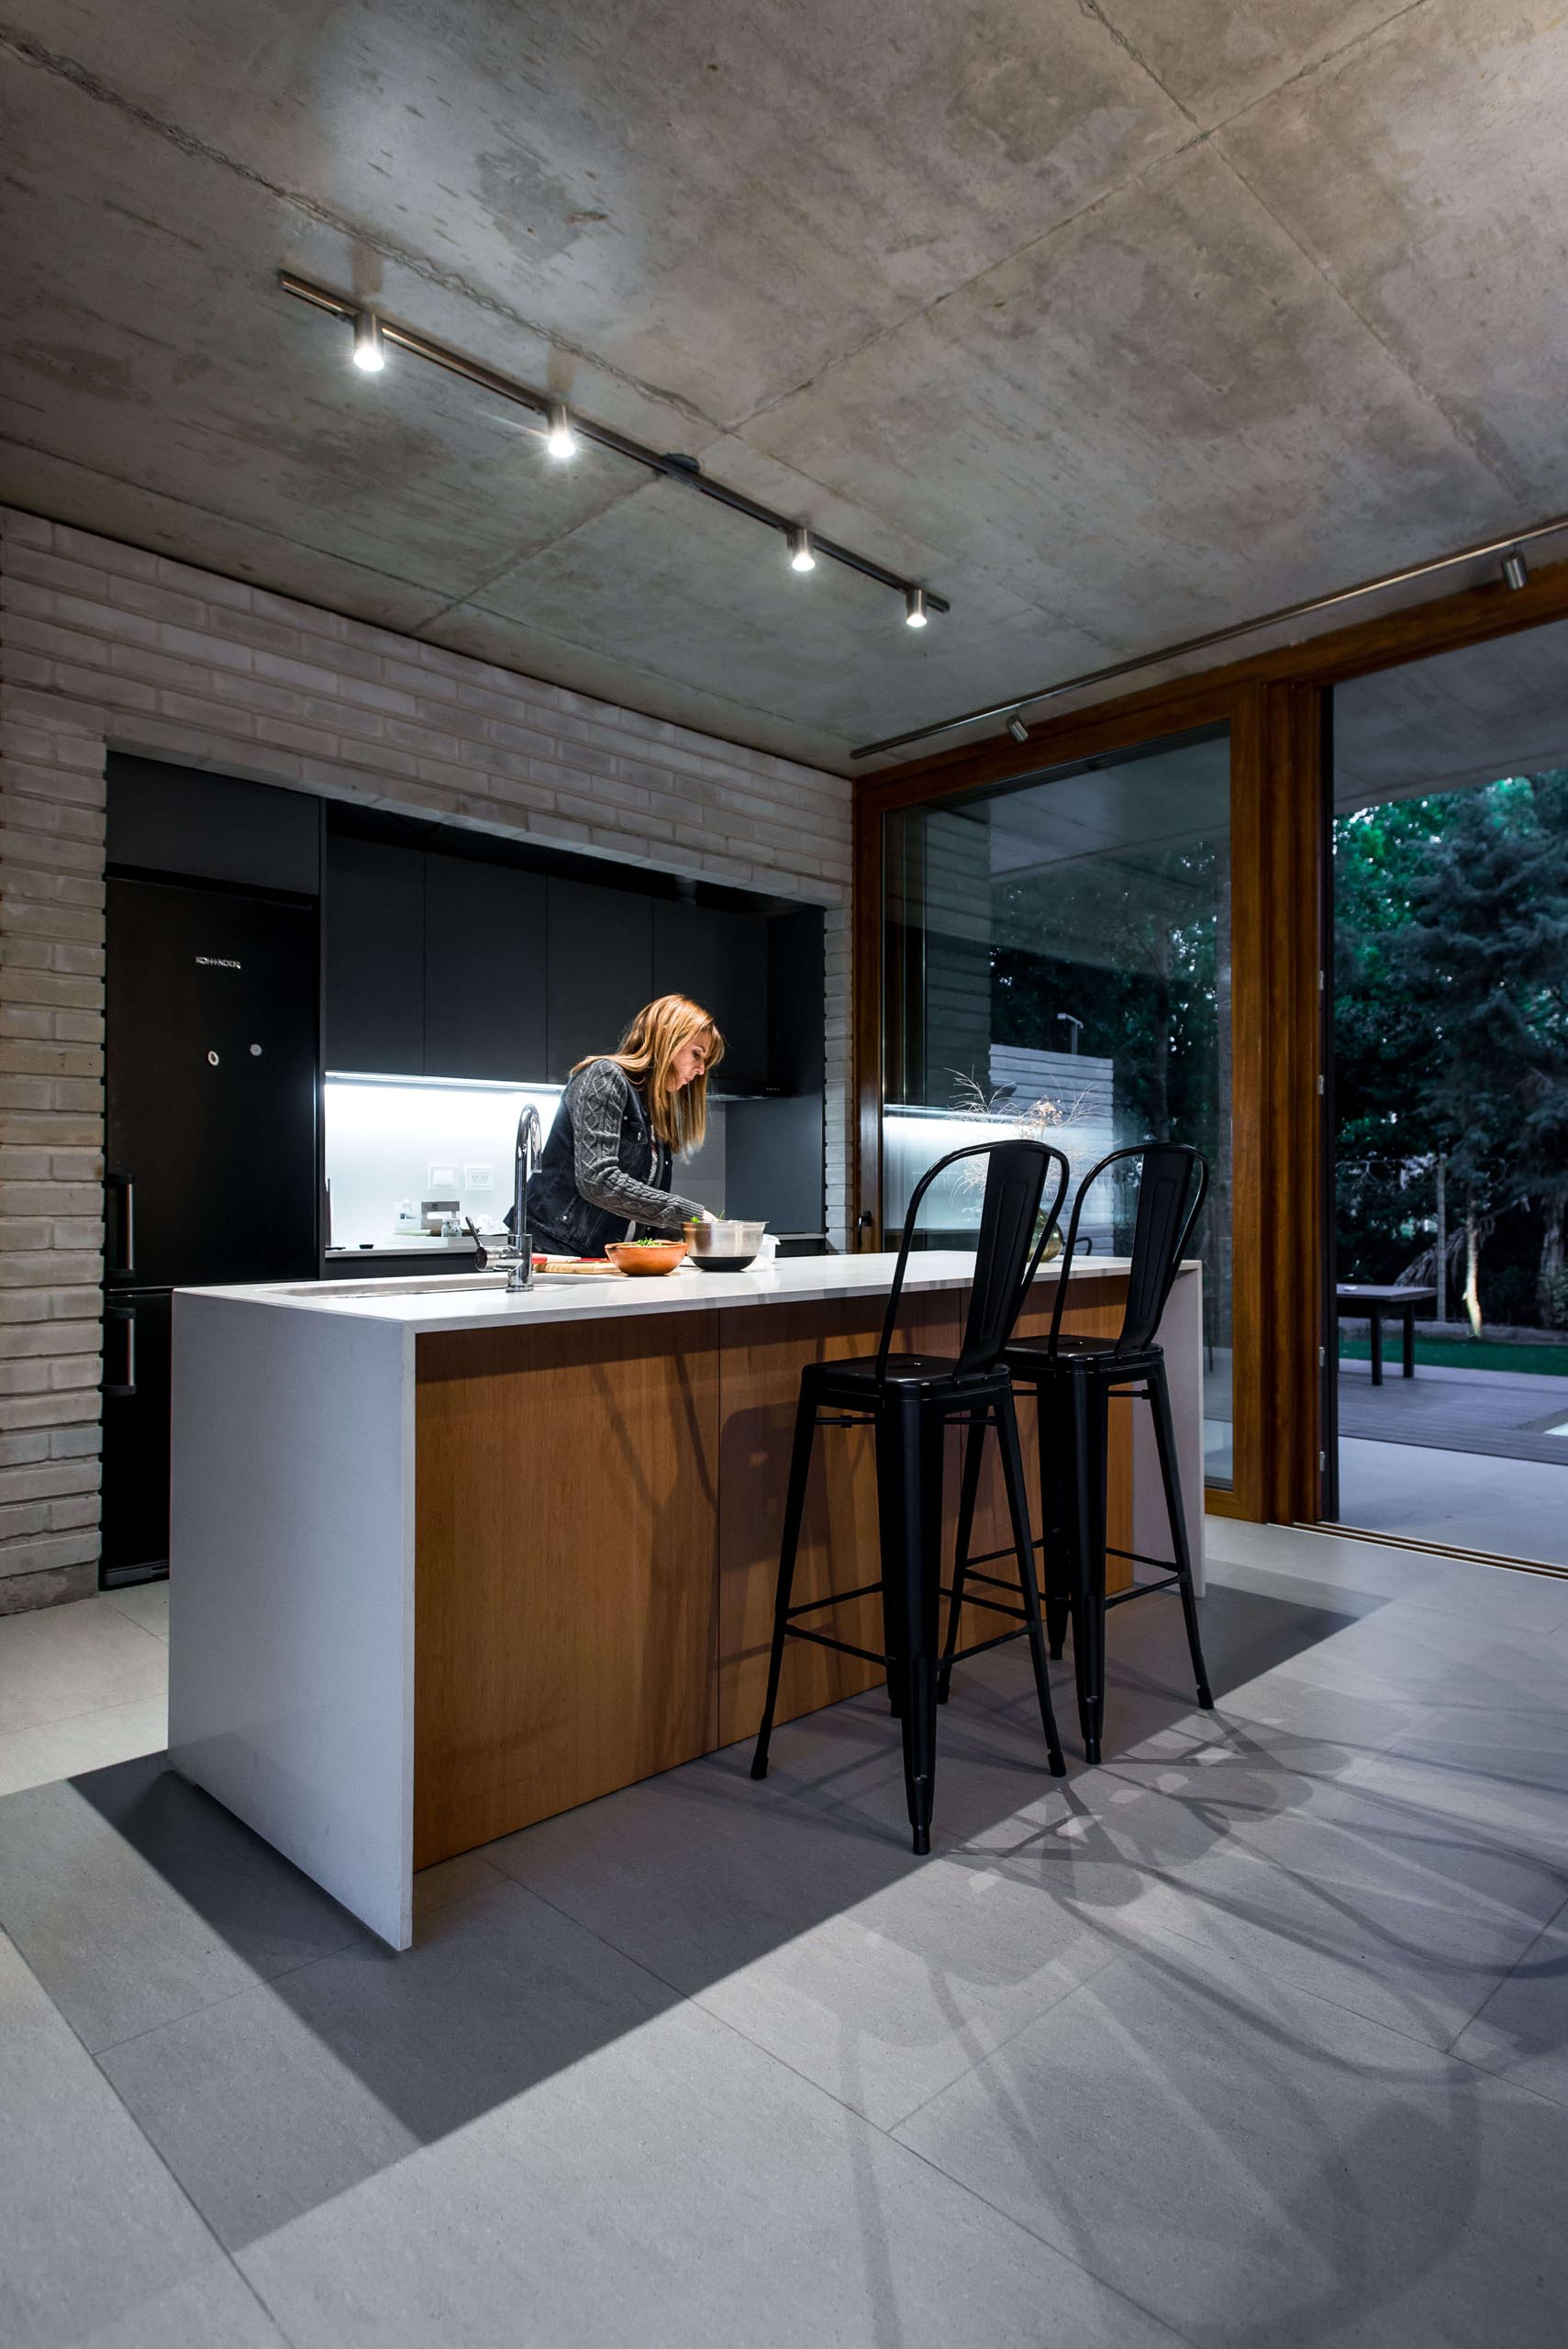 A modern kitchen with exposed concrete, black cabinets, a white island and wood accents.